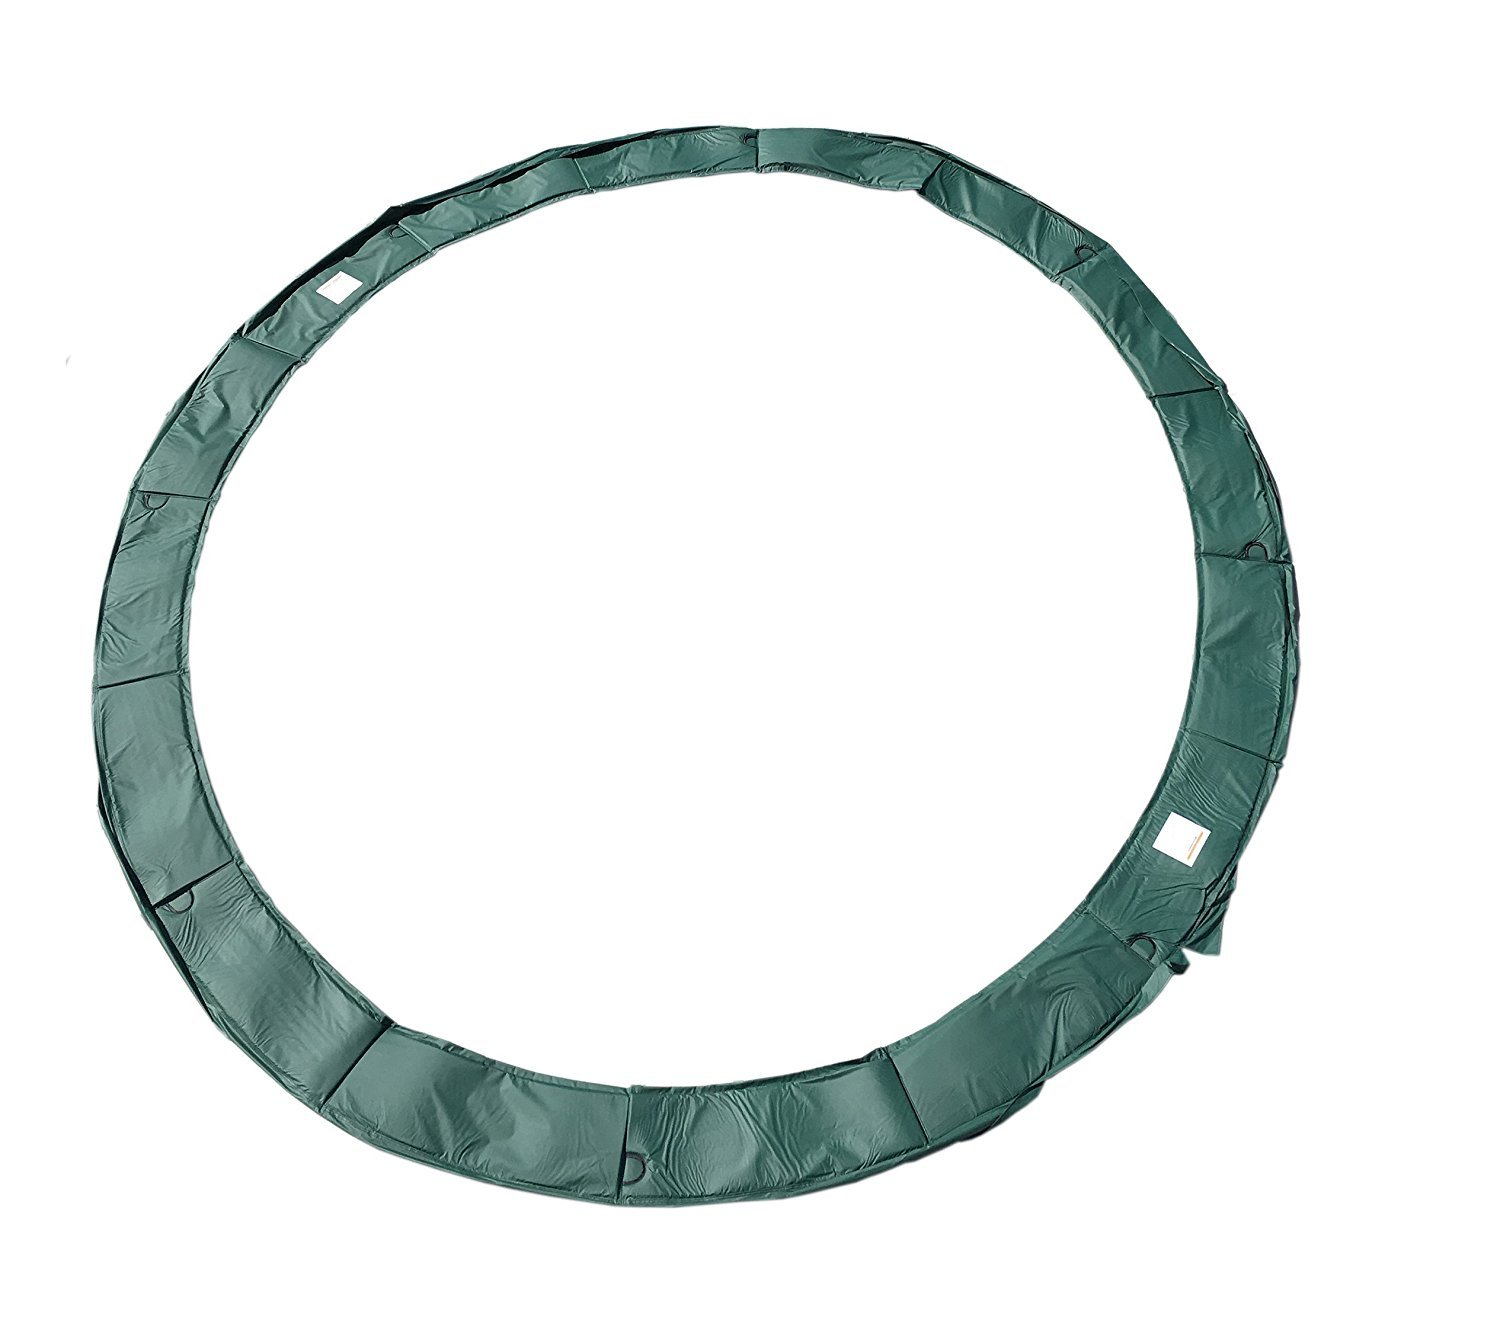 12ft Round Green Safety Pad for Trampoline (531207) by Trampoline Pro